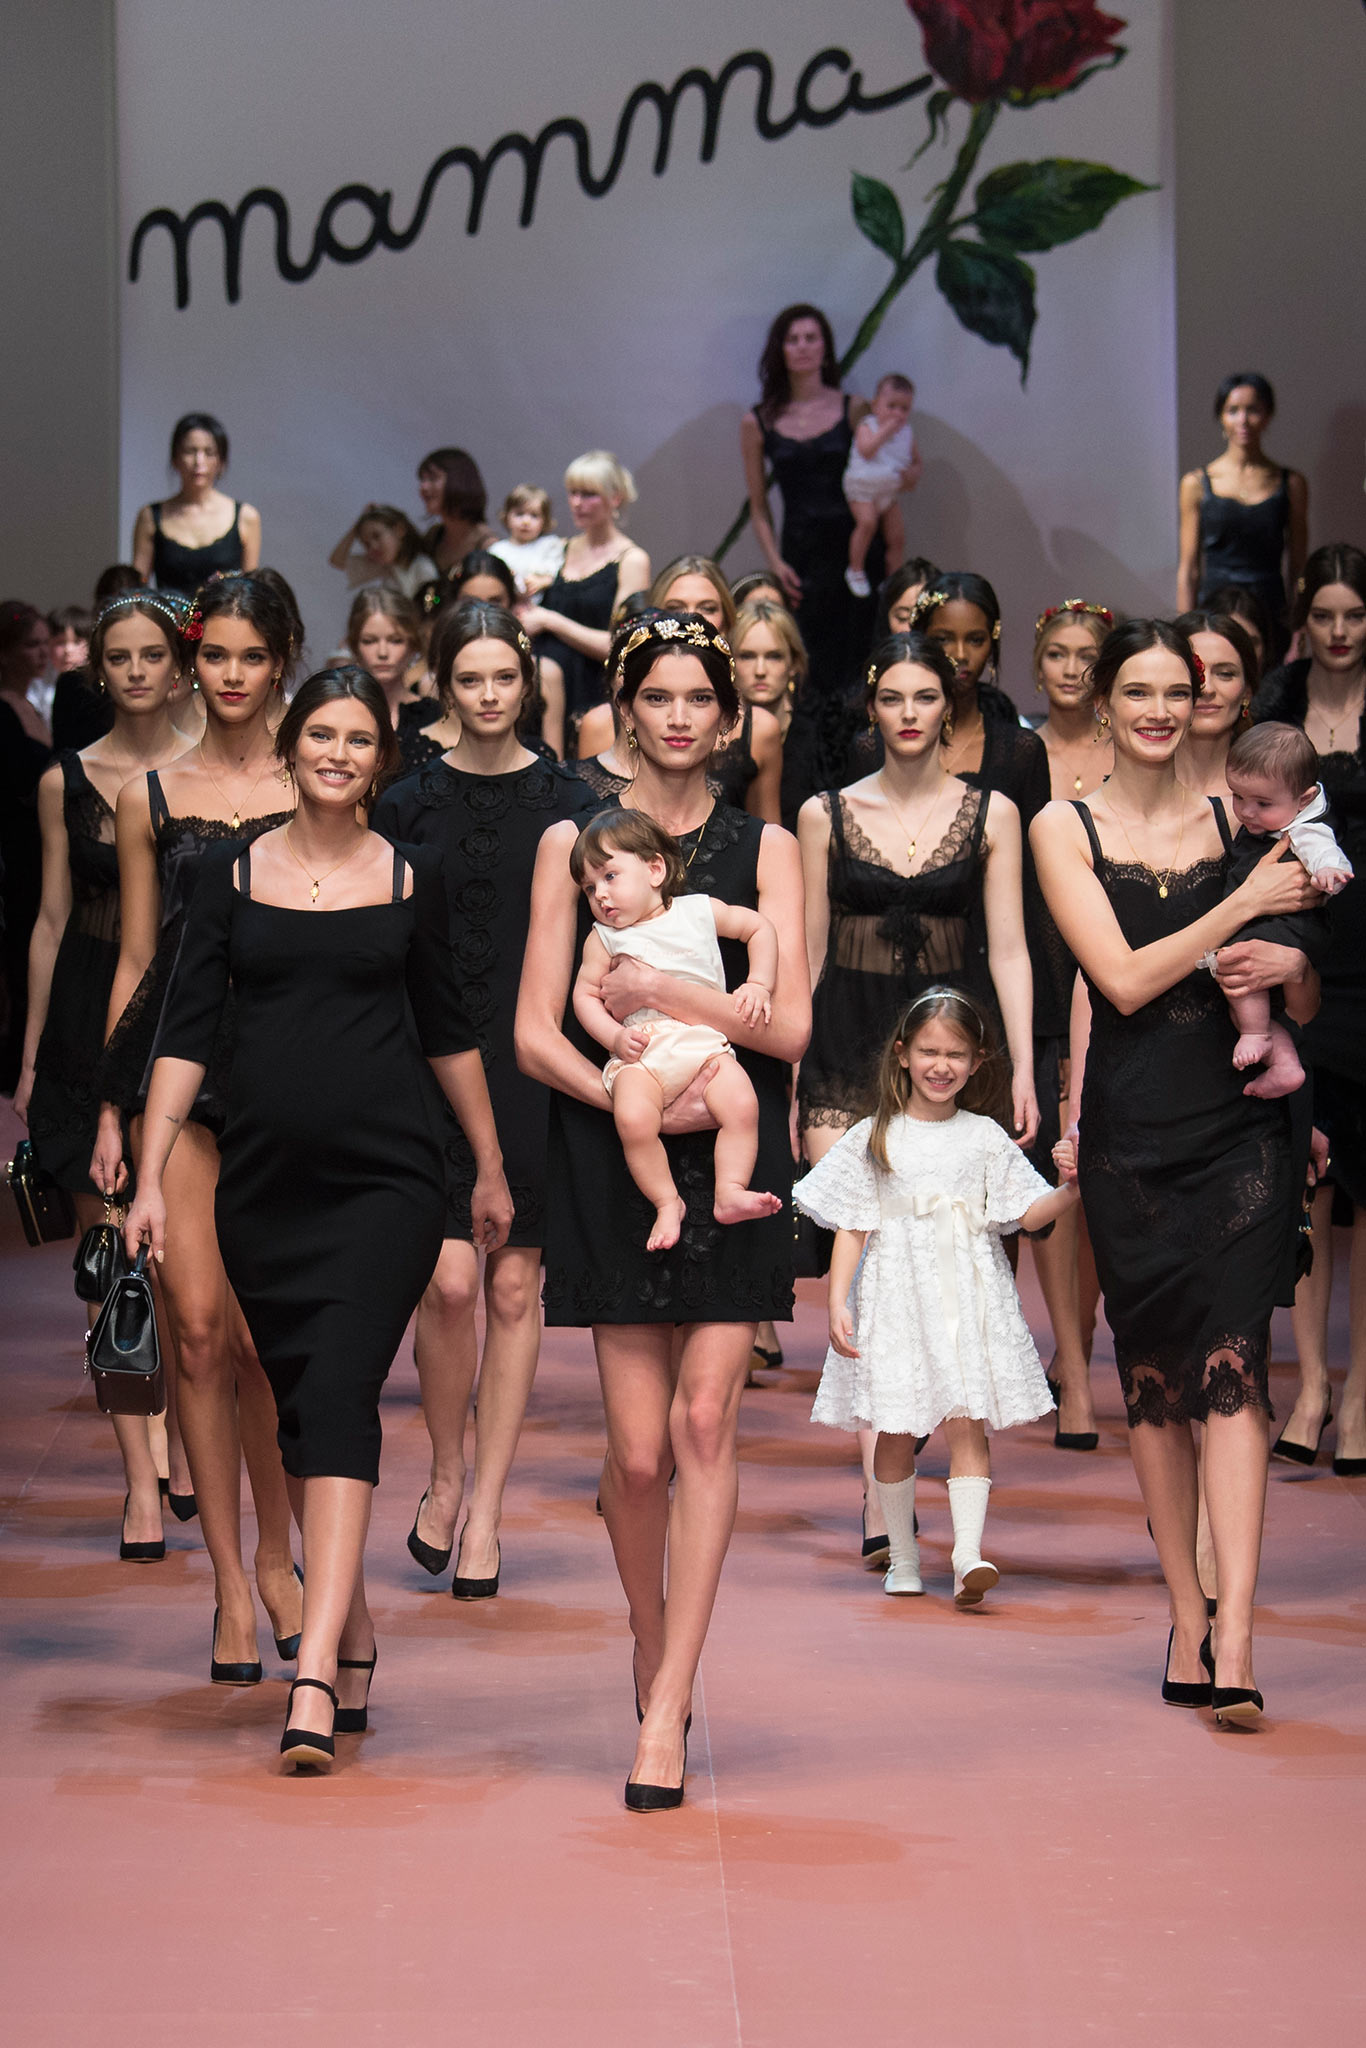 Dozens of models wearing Dolce & Gabbana In an ode to all the mothers around the world